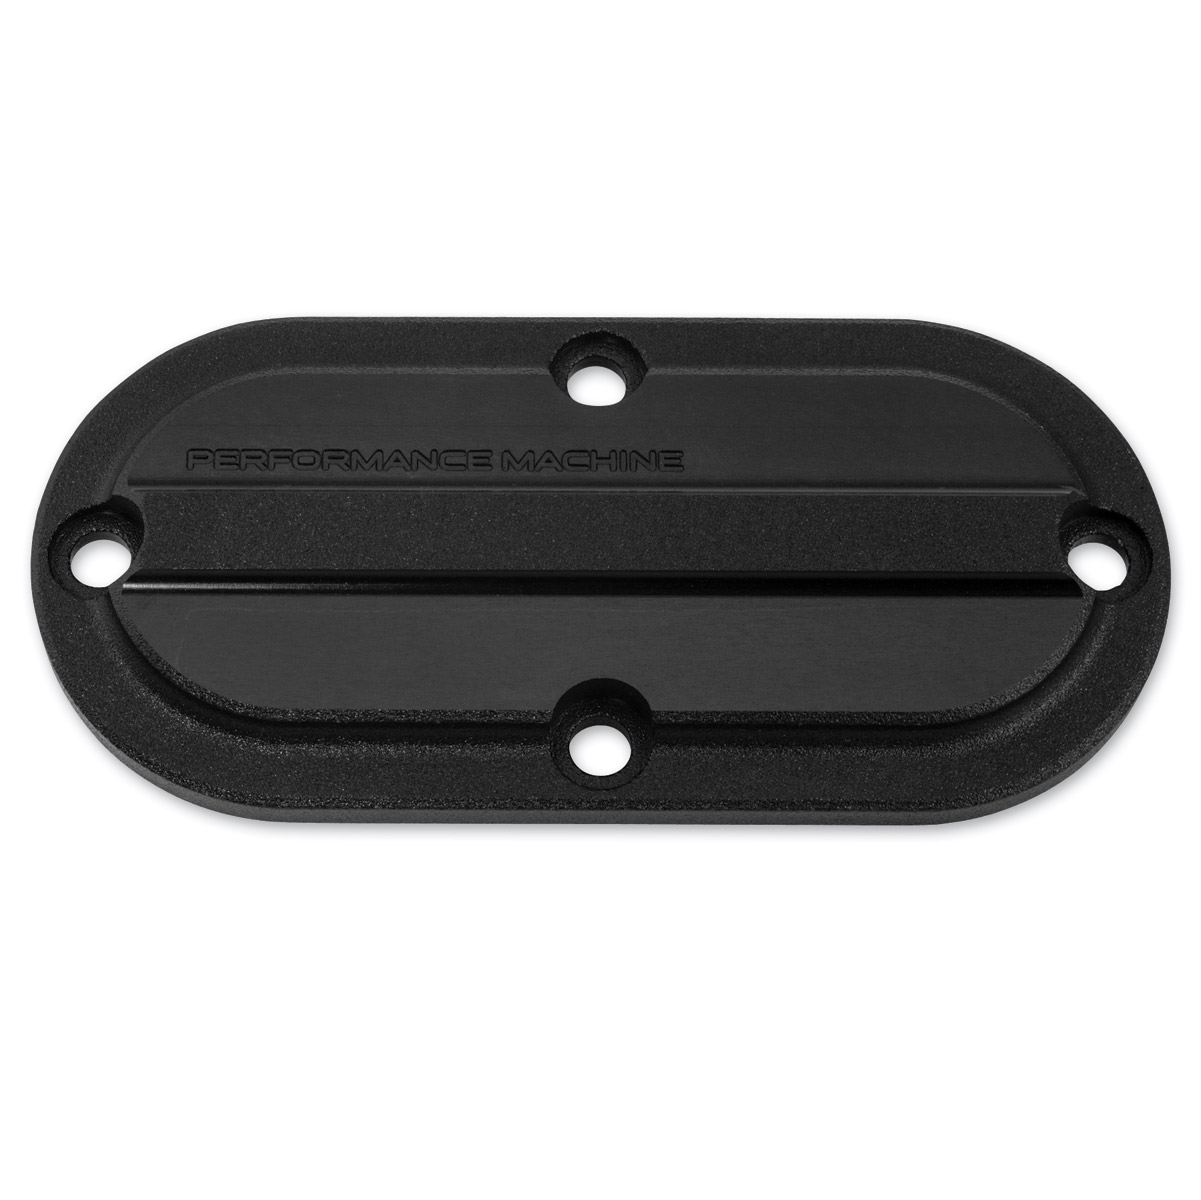 Performance Machine Drive Black Ops Inspection Cover